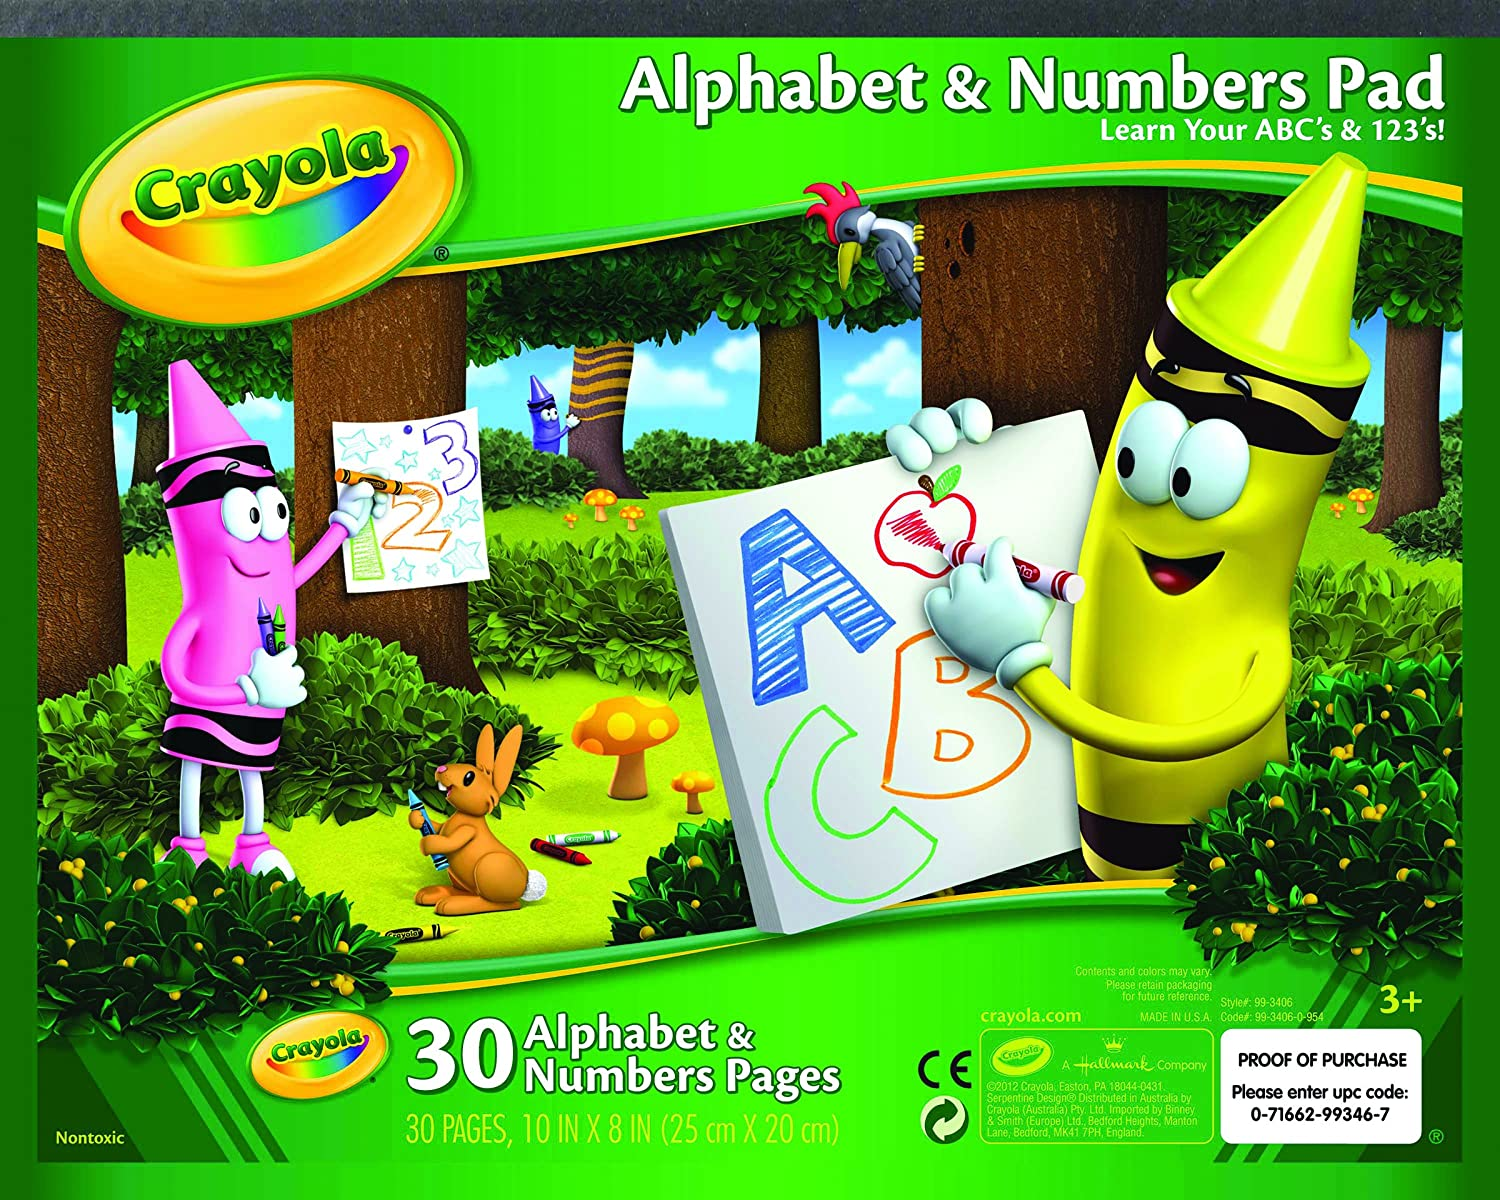 Amazon.com: Crayola Alphabet and Number Pad ABC/123 Tablet: Toys & Games